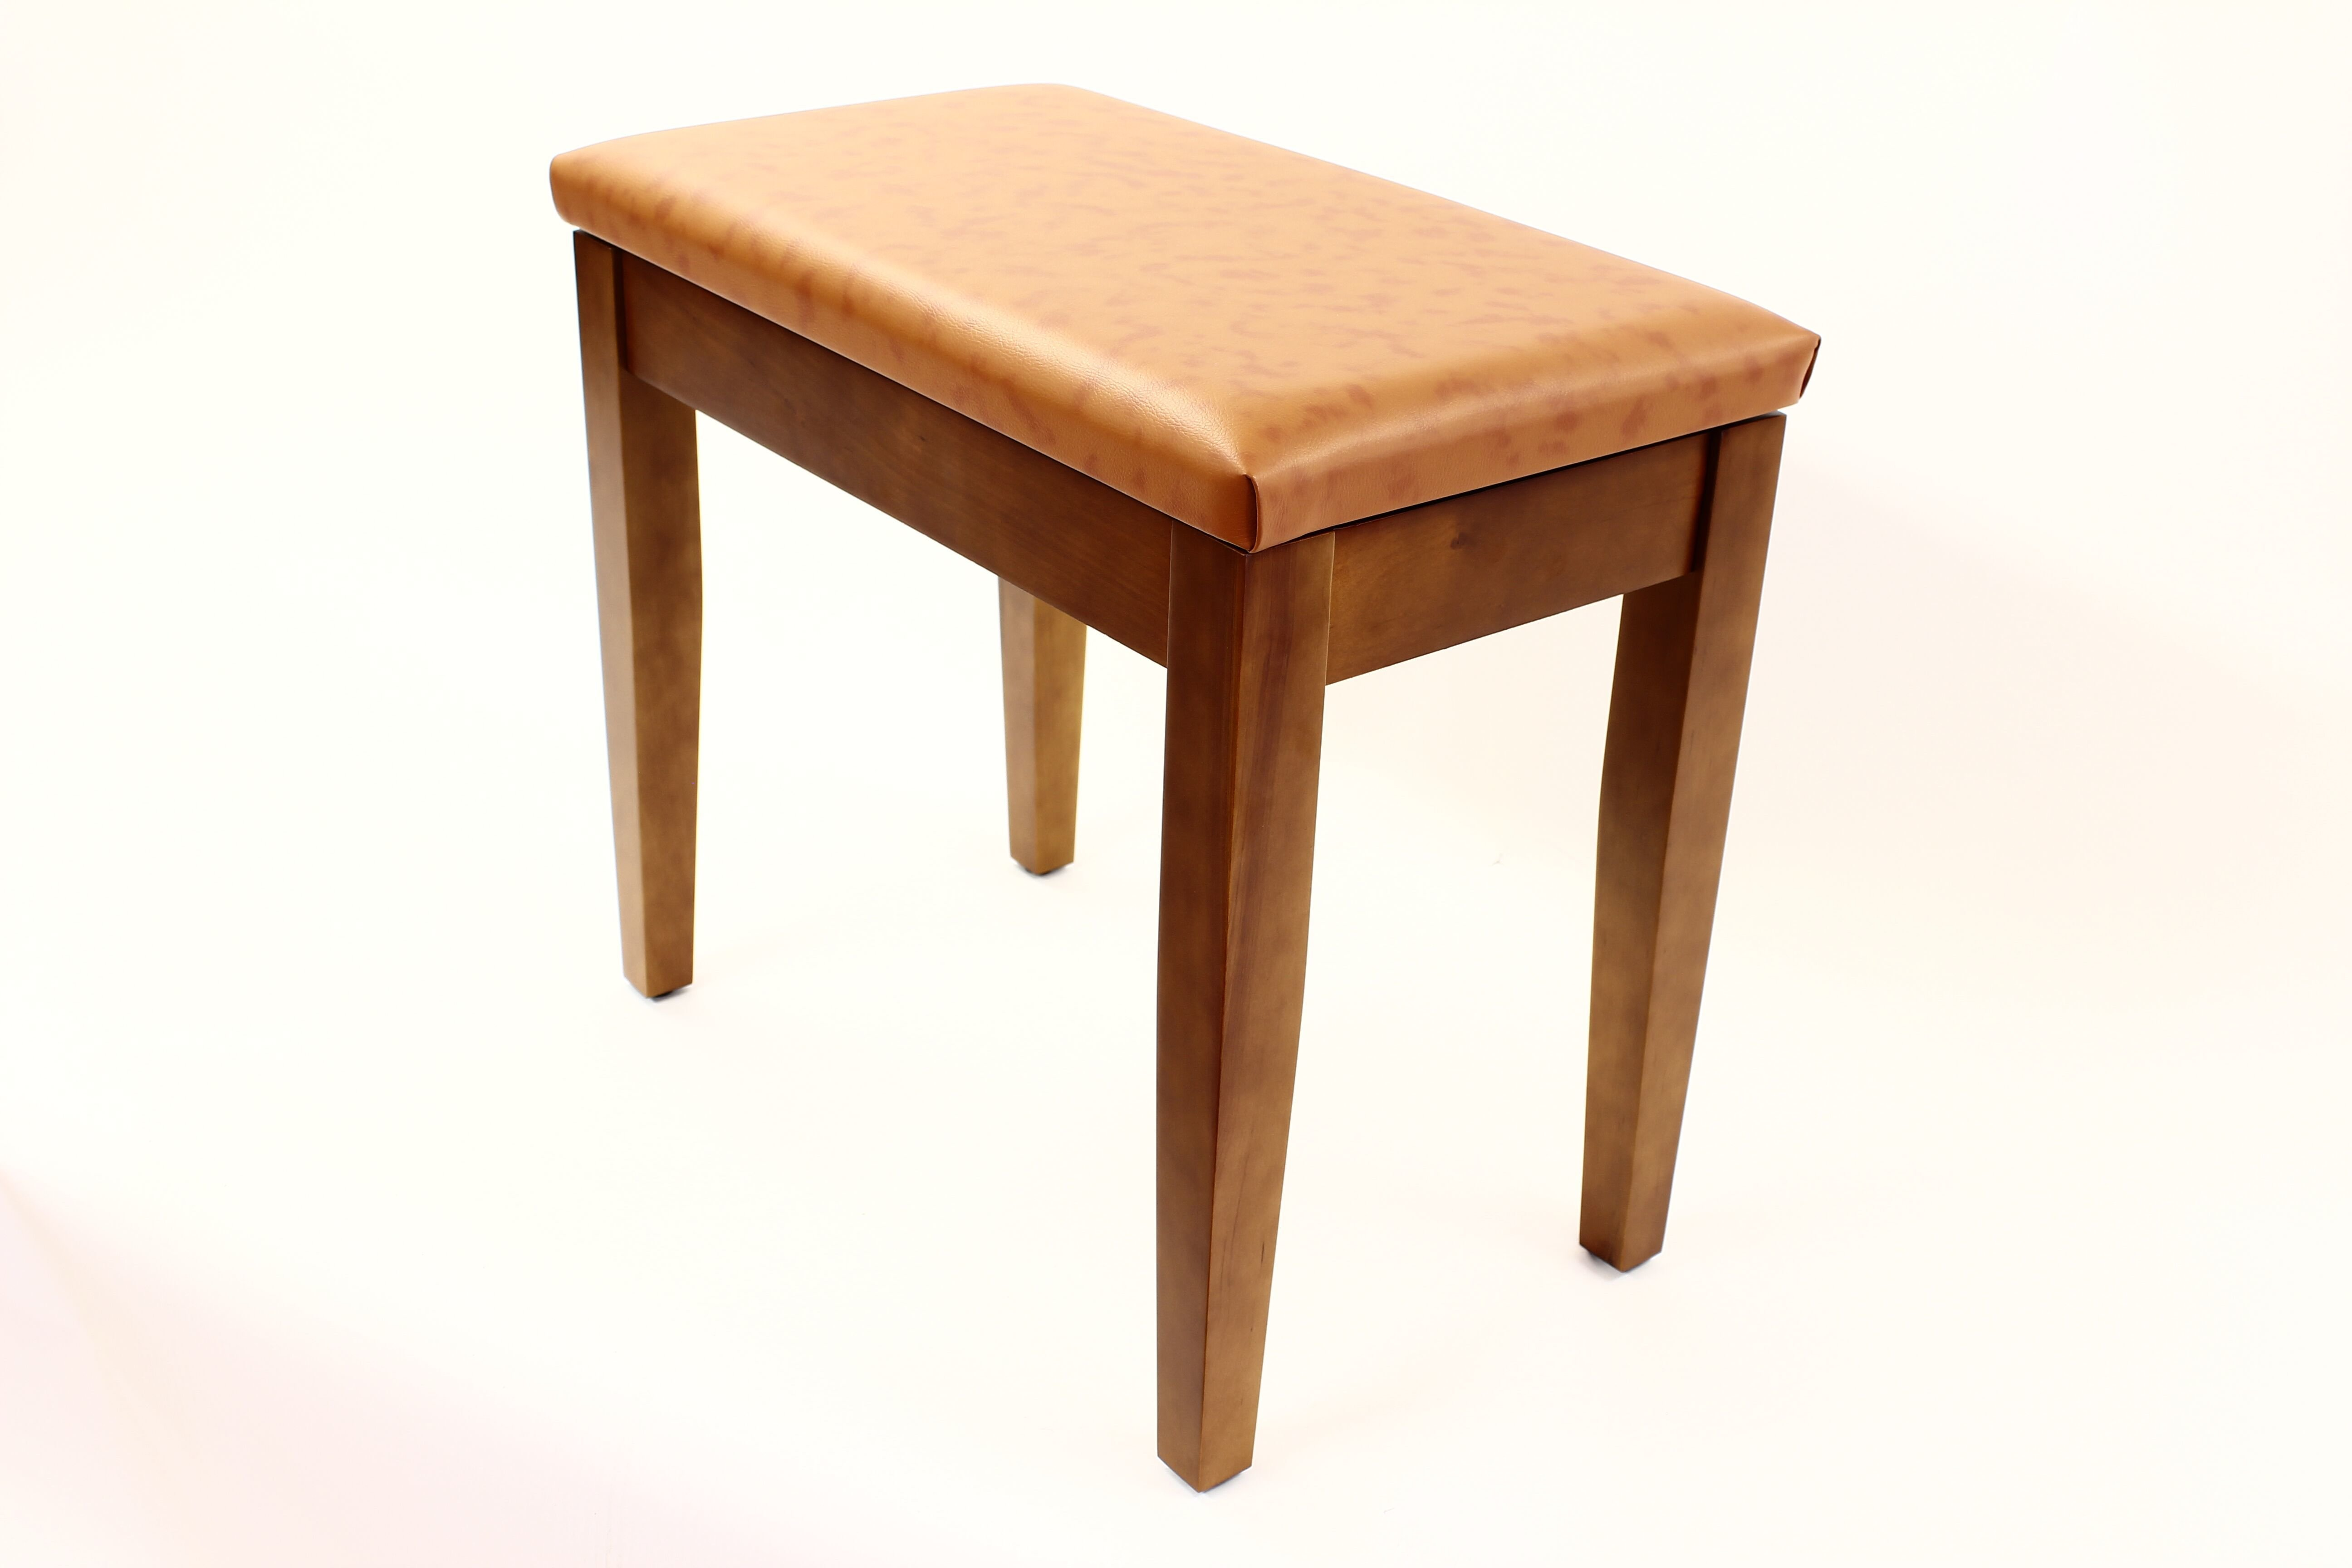 Coda Piano Stool Walnut with Storage